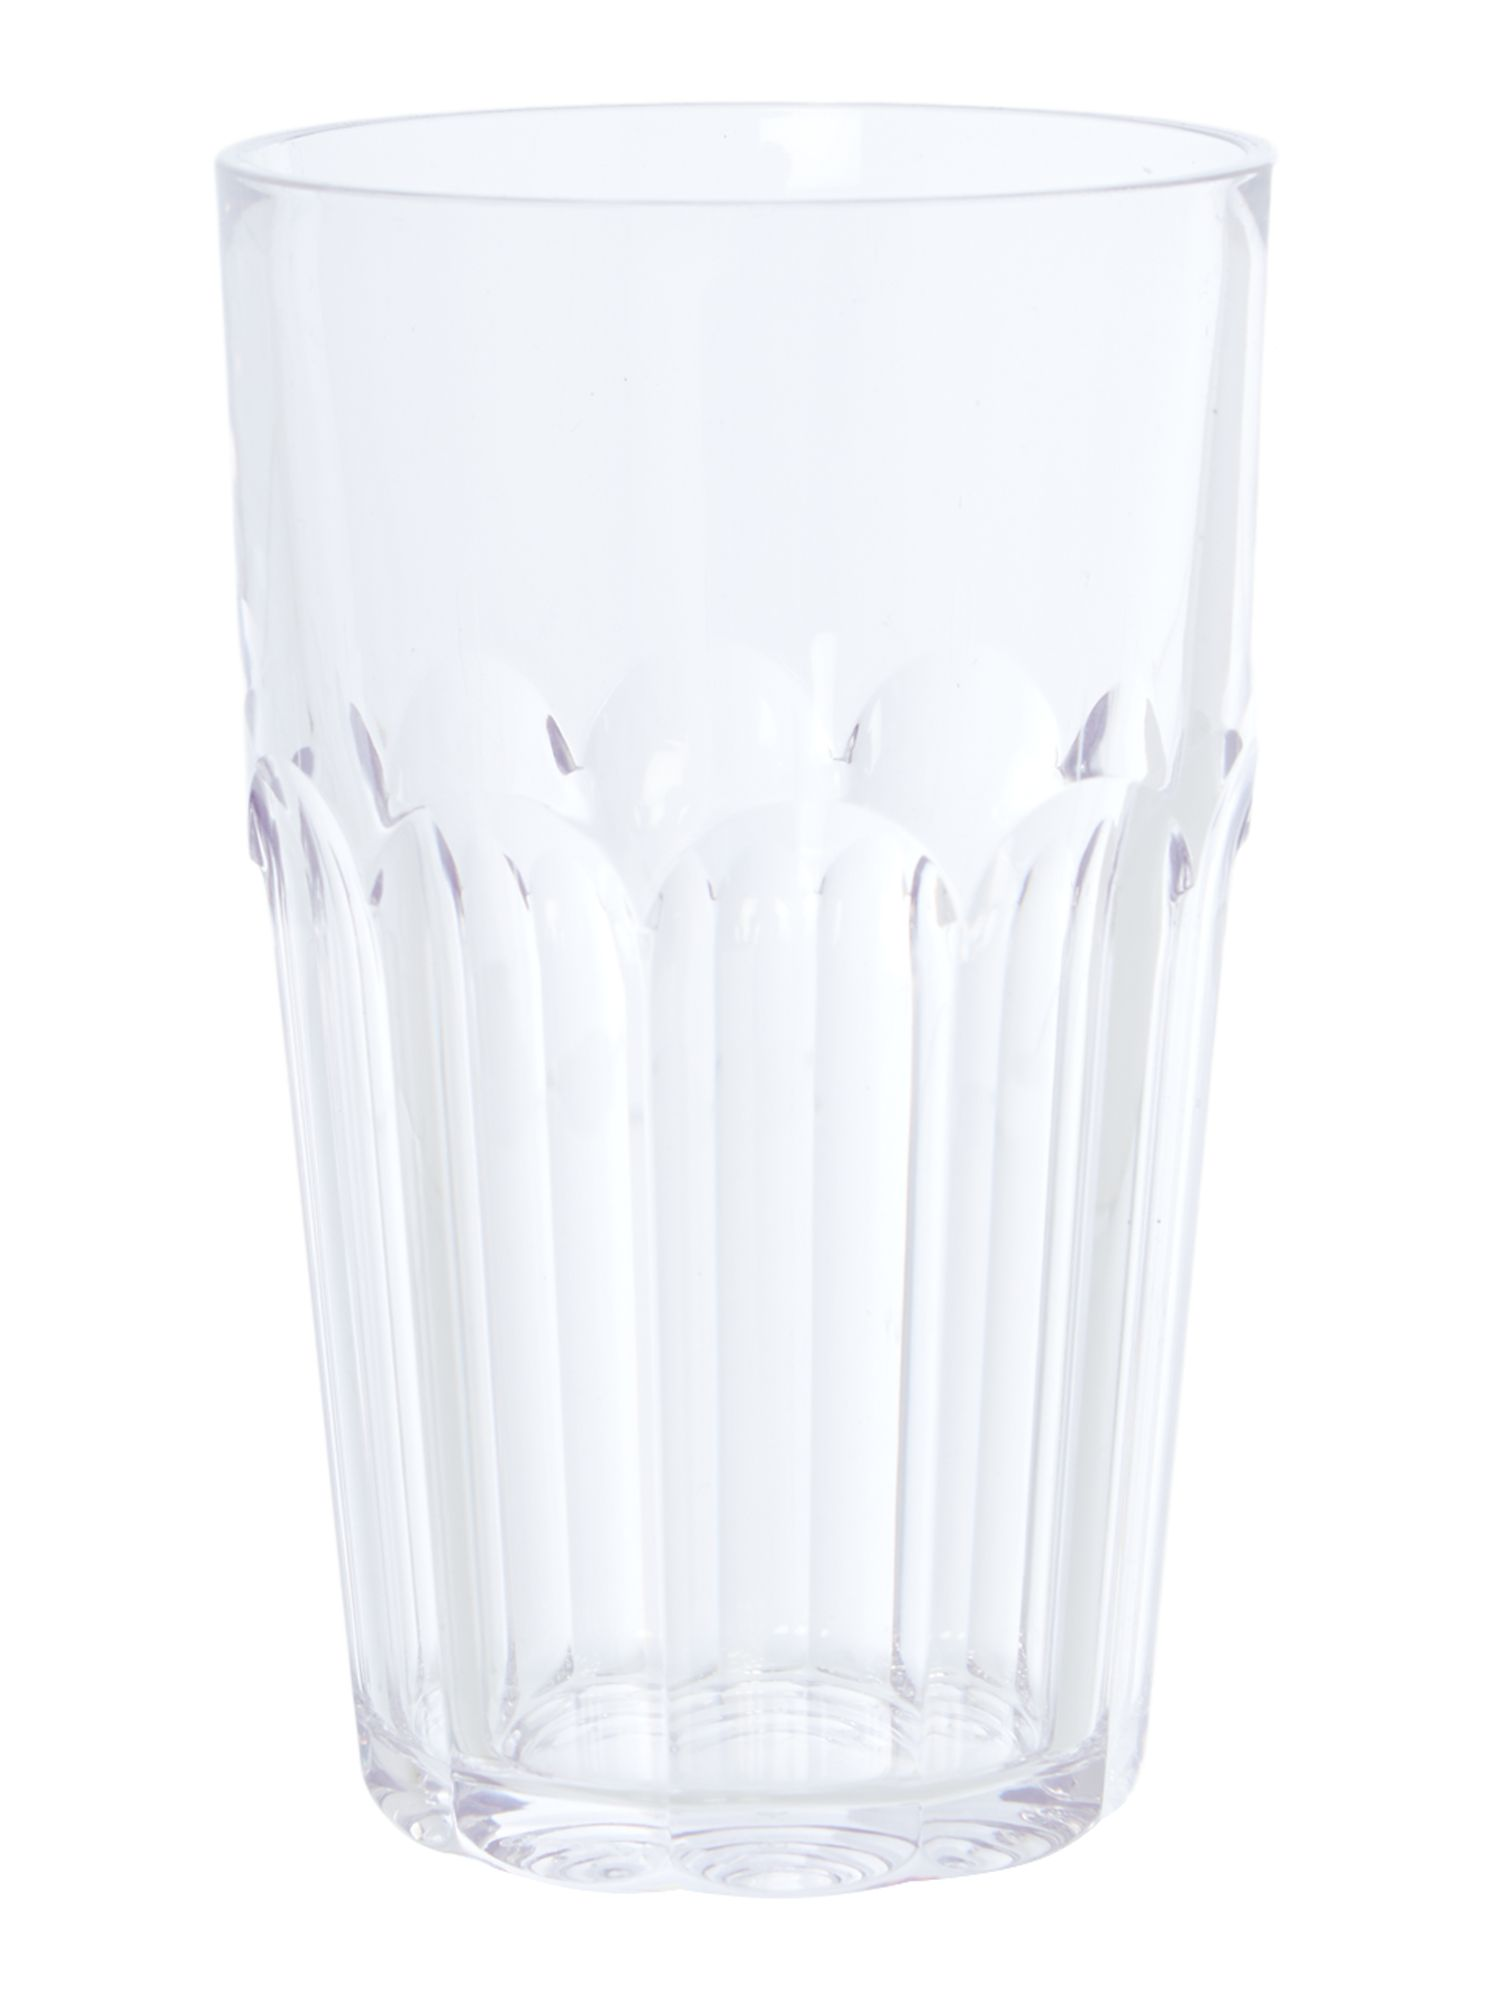 Guzzini Happy Hour Glassware Range